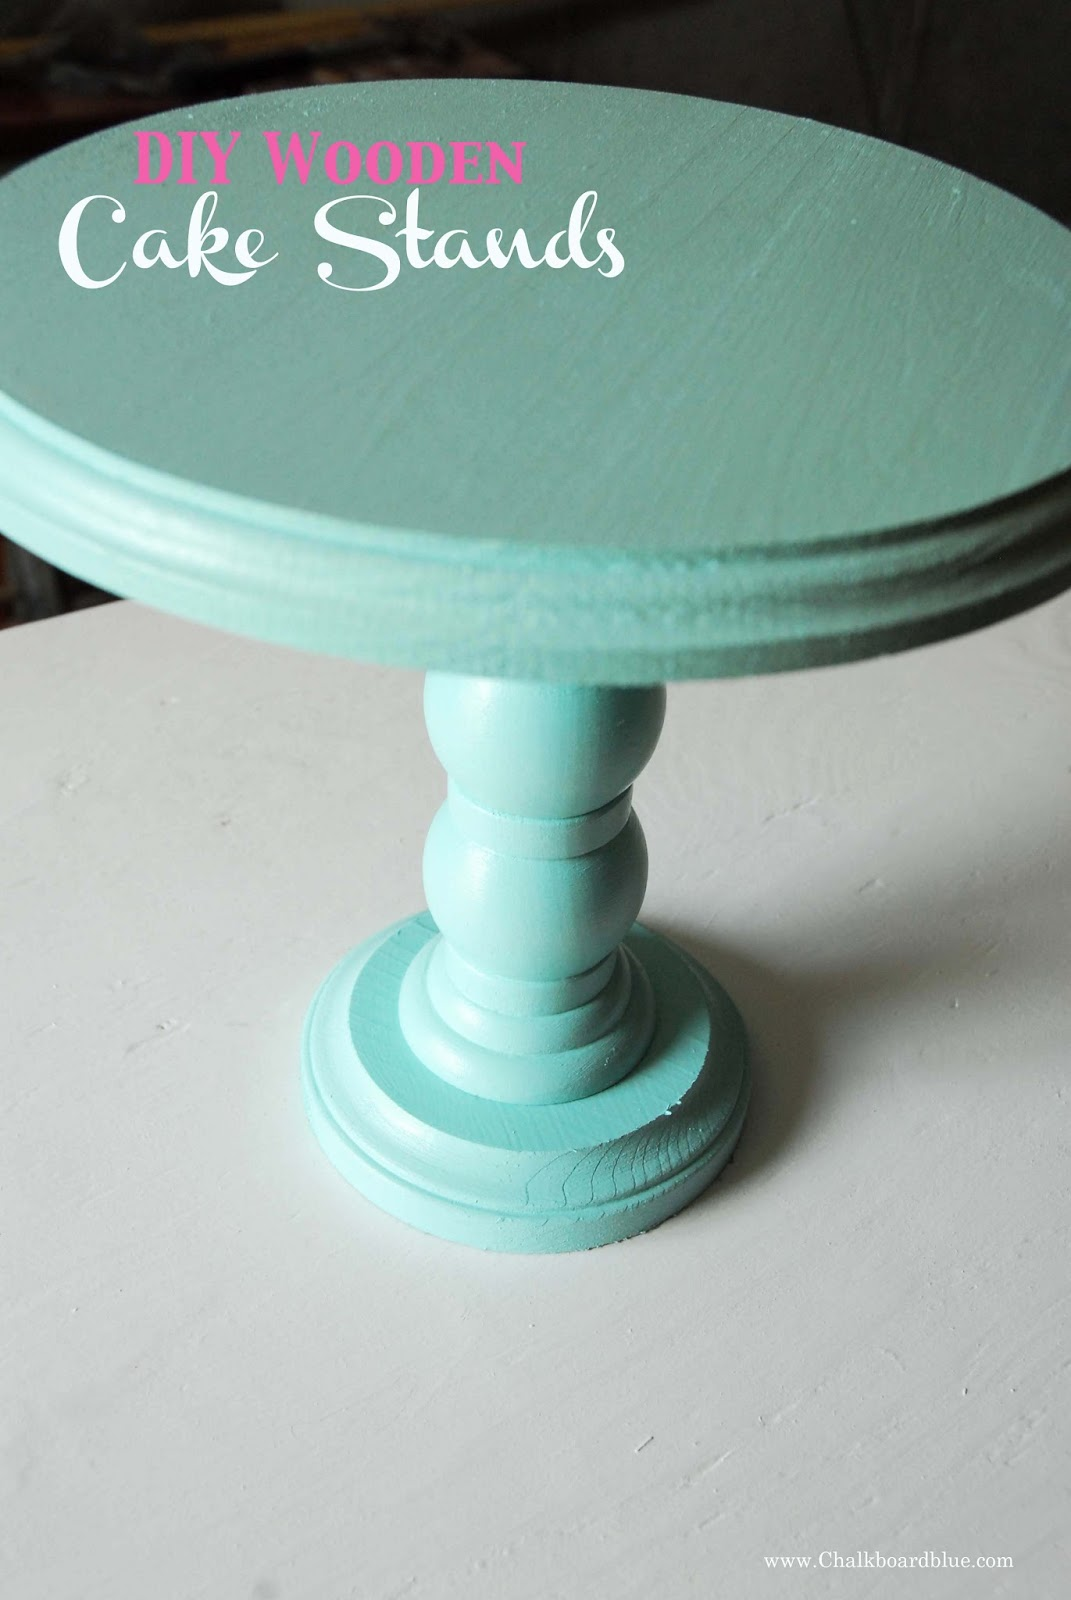 chalkboard blue diy wooden cake stands. Black Bedroom Furniture Sets. Home Design Ideas